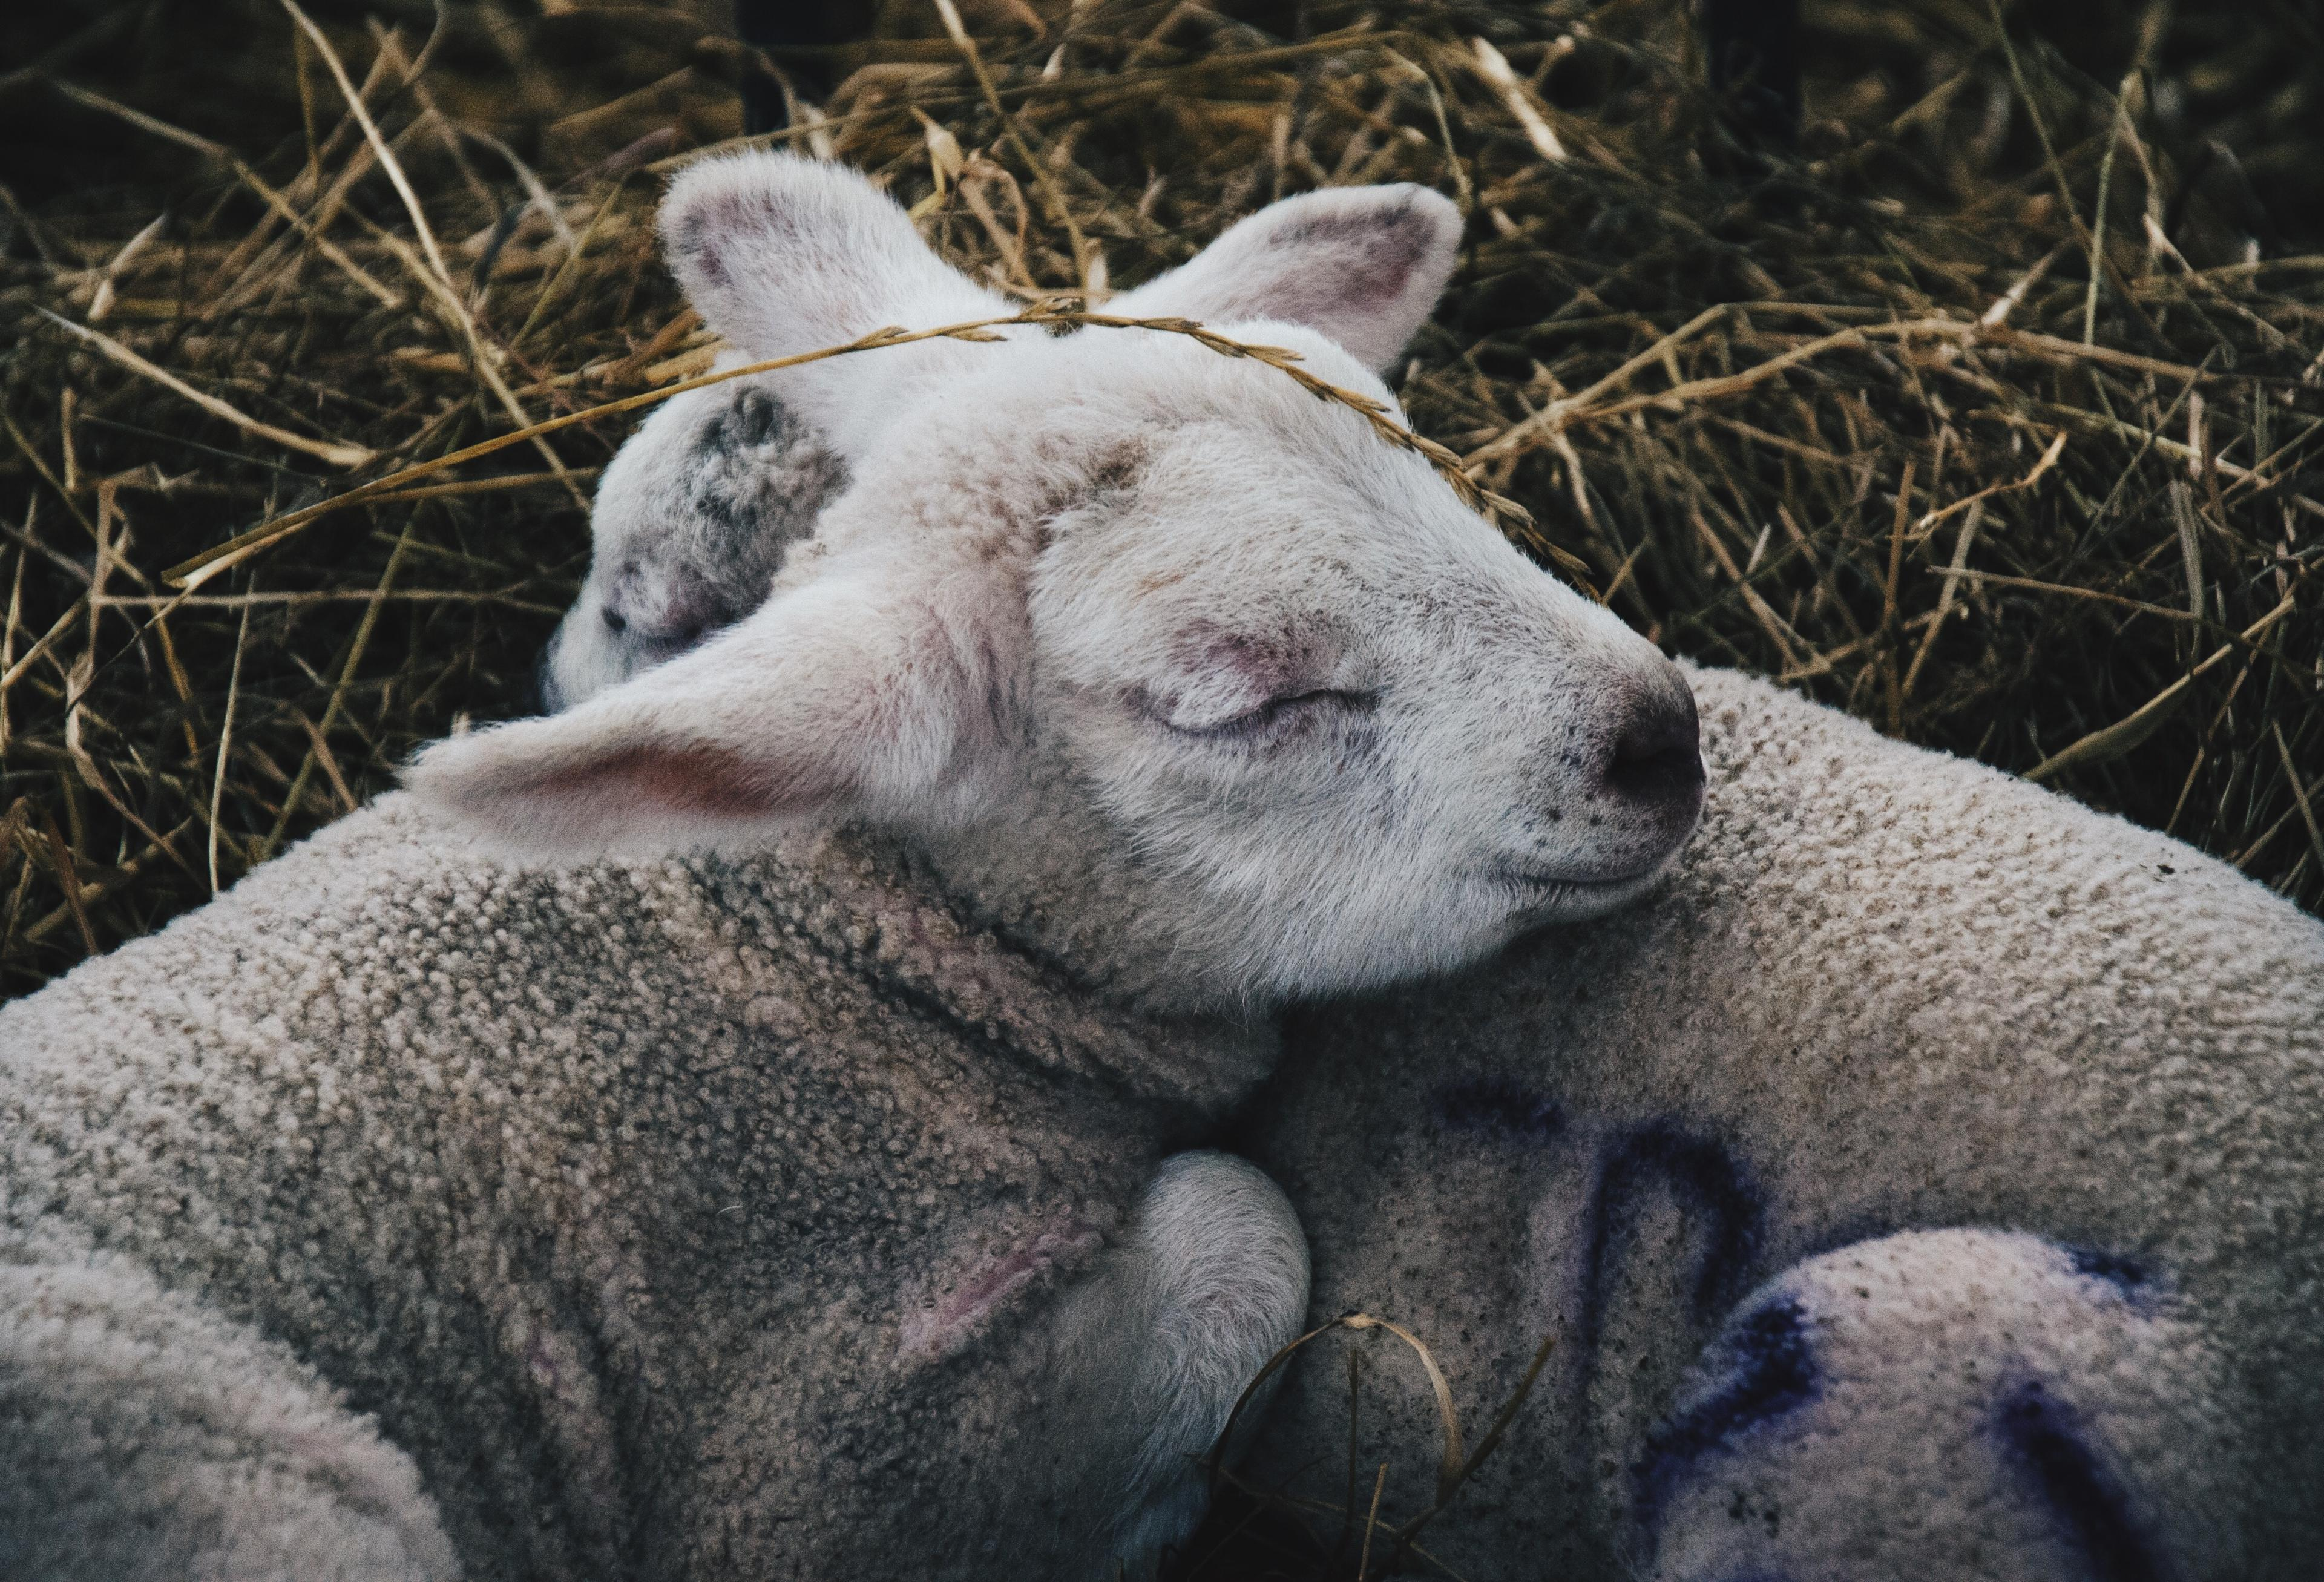 Two baby lambs snuggling in the hay, asleep